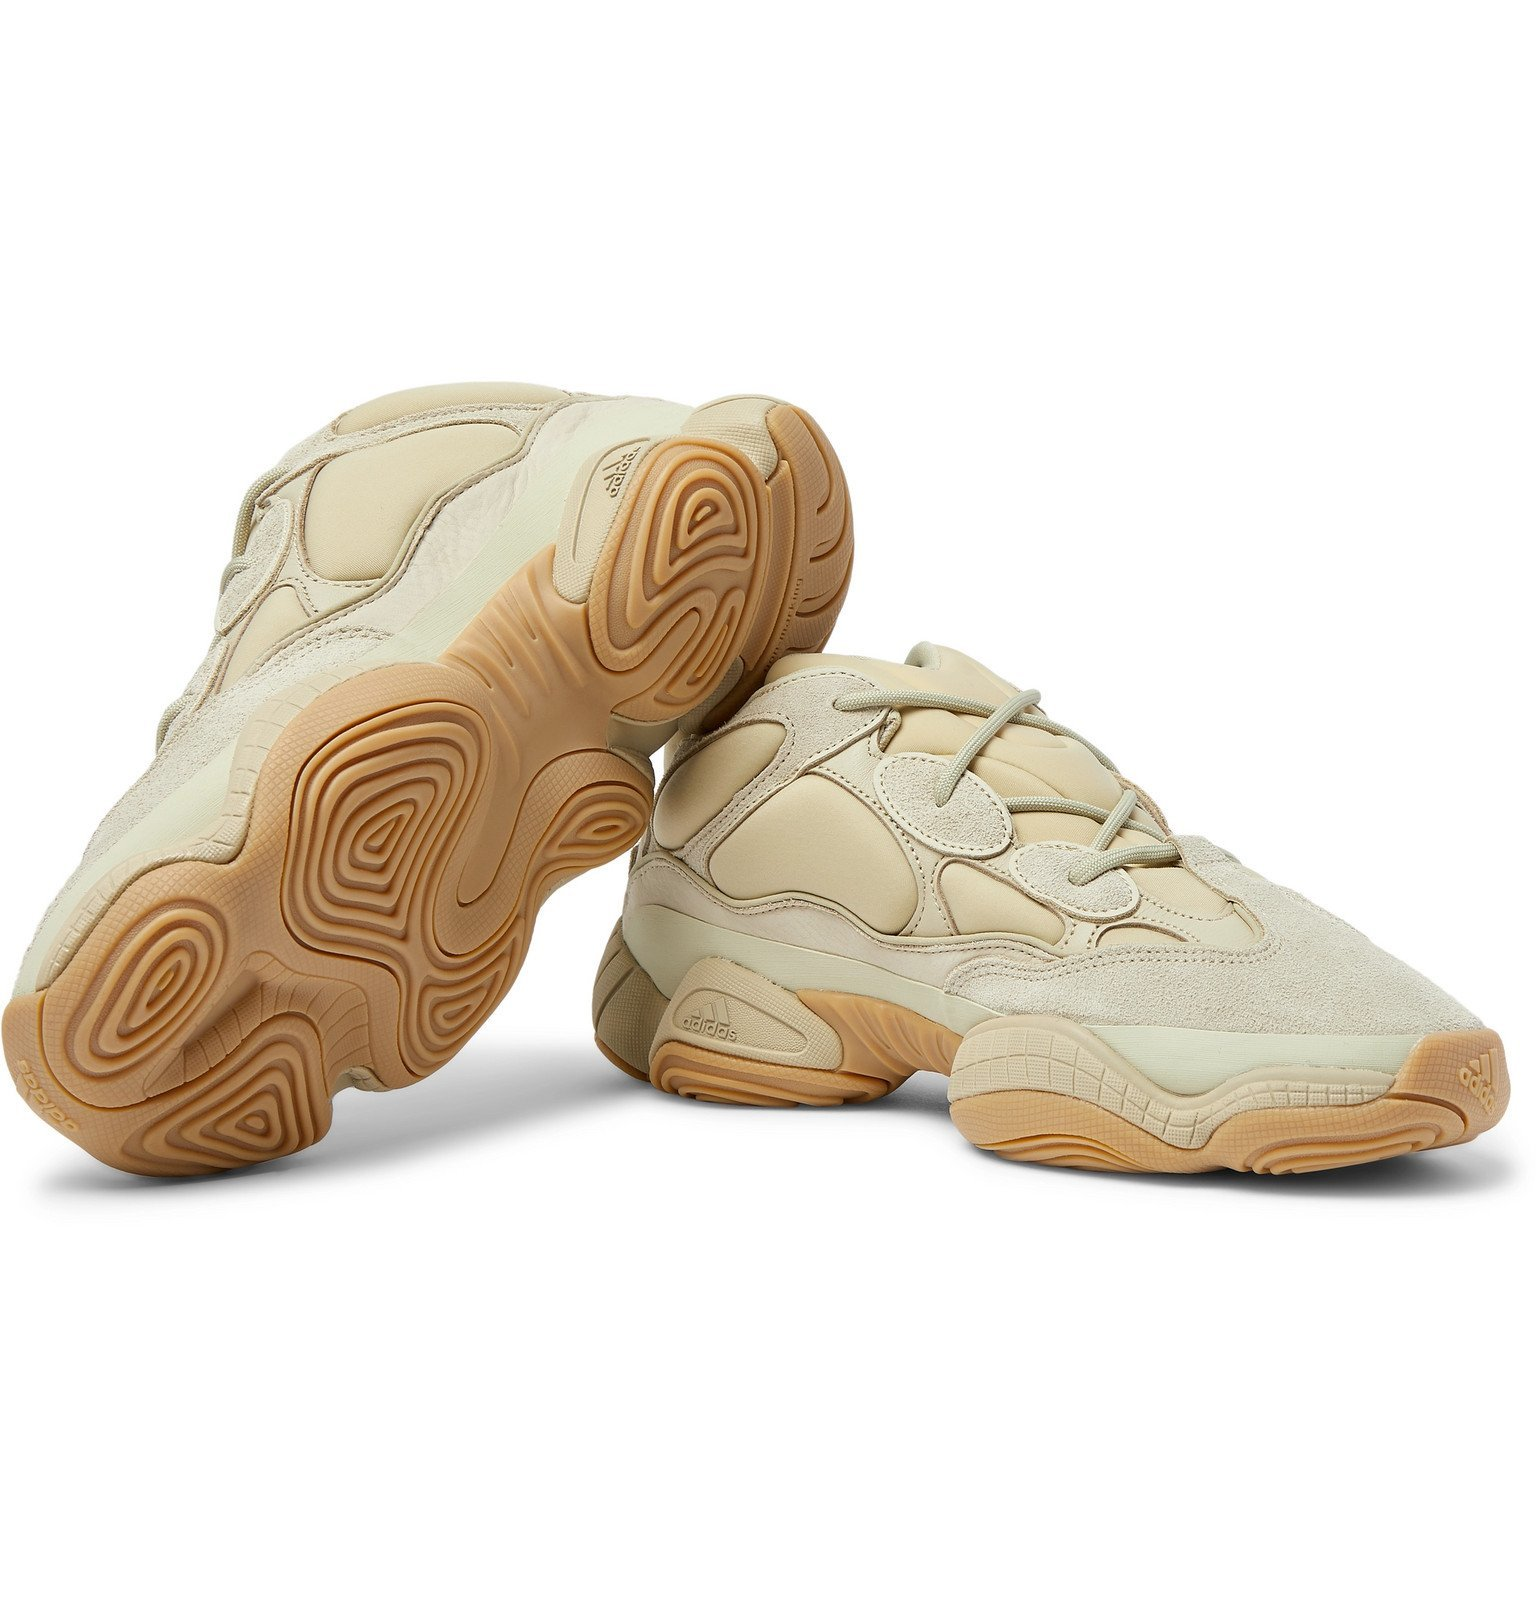 adidas Originals - Yeezy 500 Neoprene, Suede and Leather Sneakers - Unknown